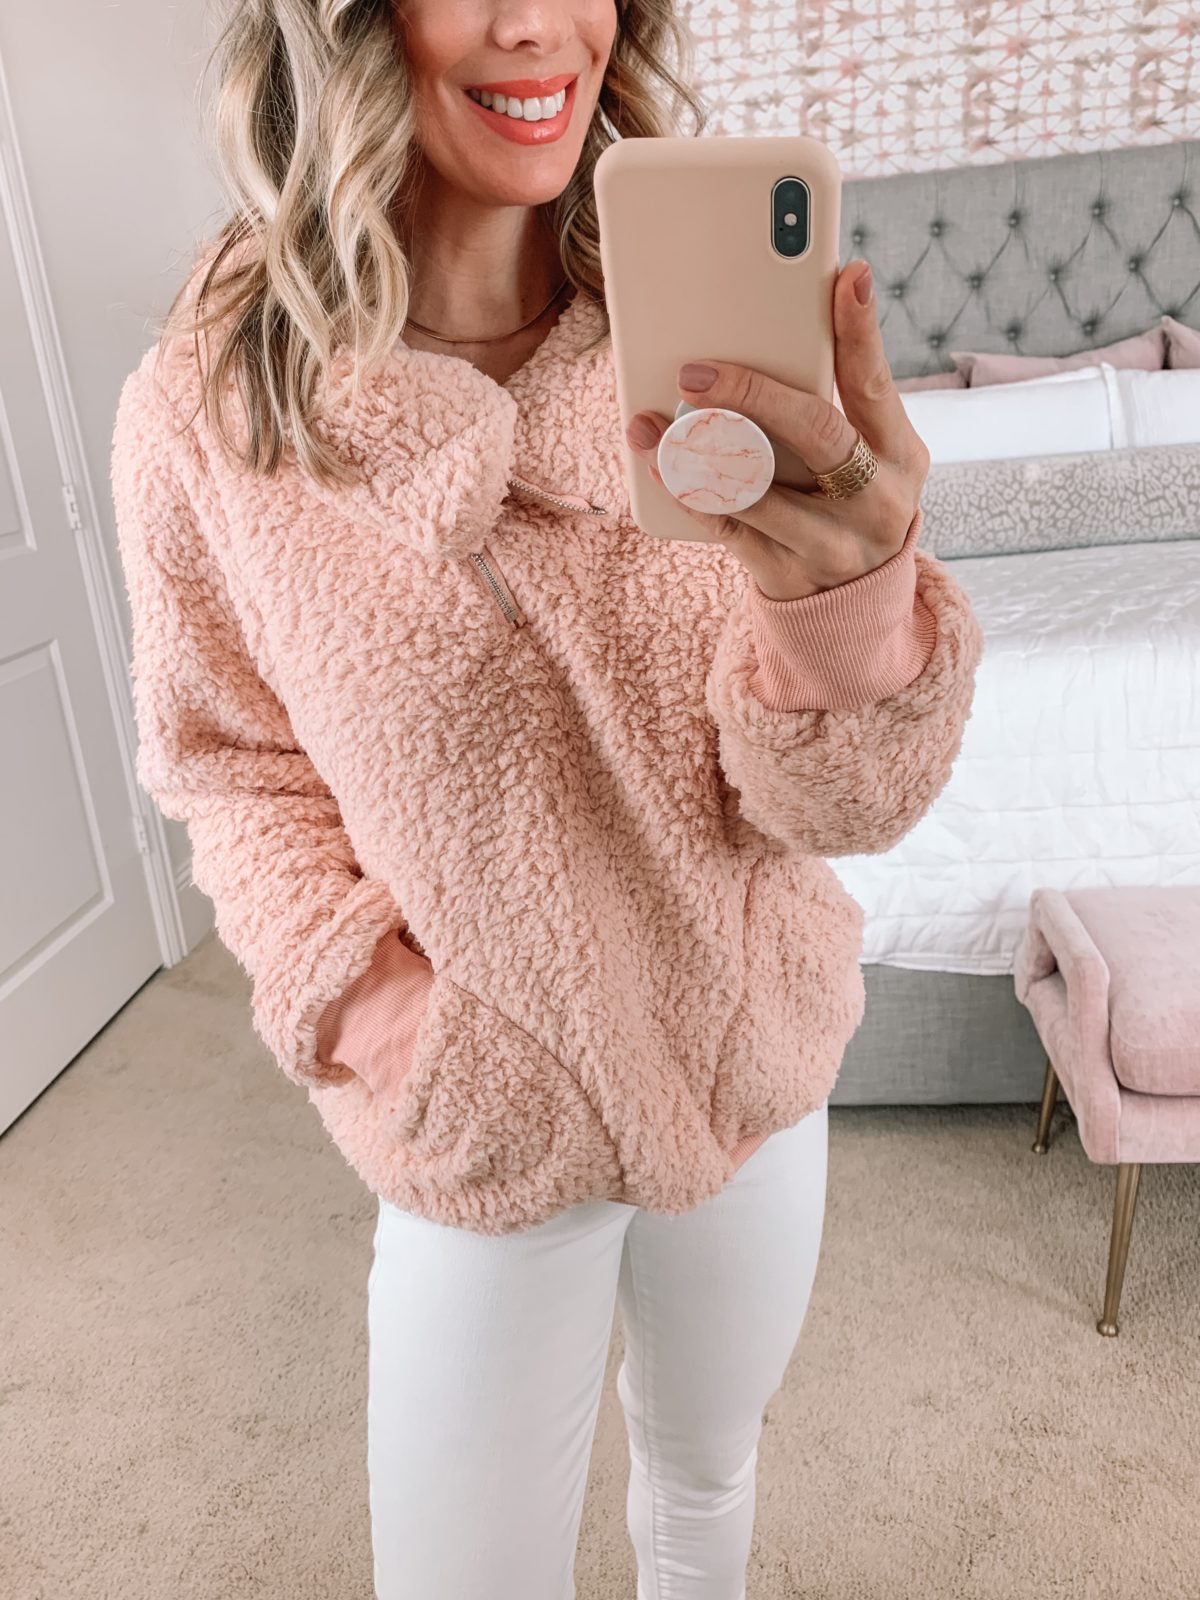 Amazon Fashion Faves, Pullover, Jeans